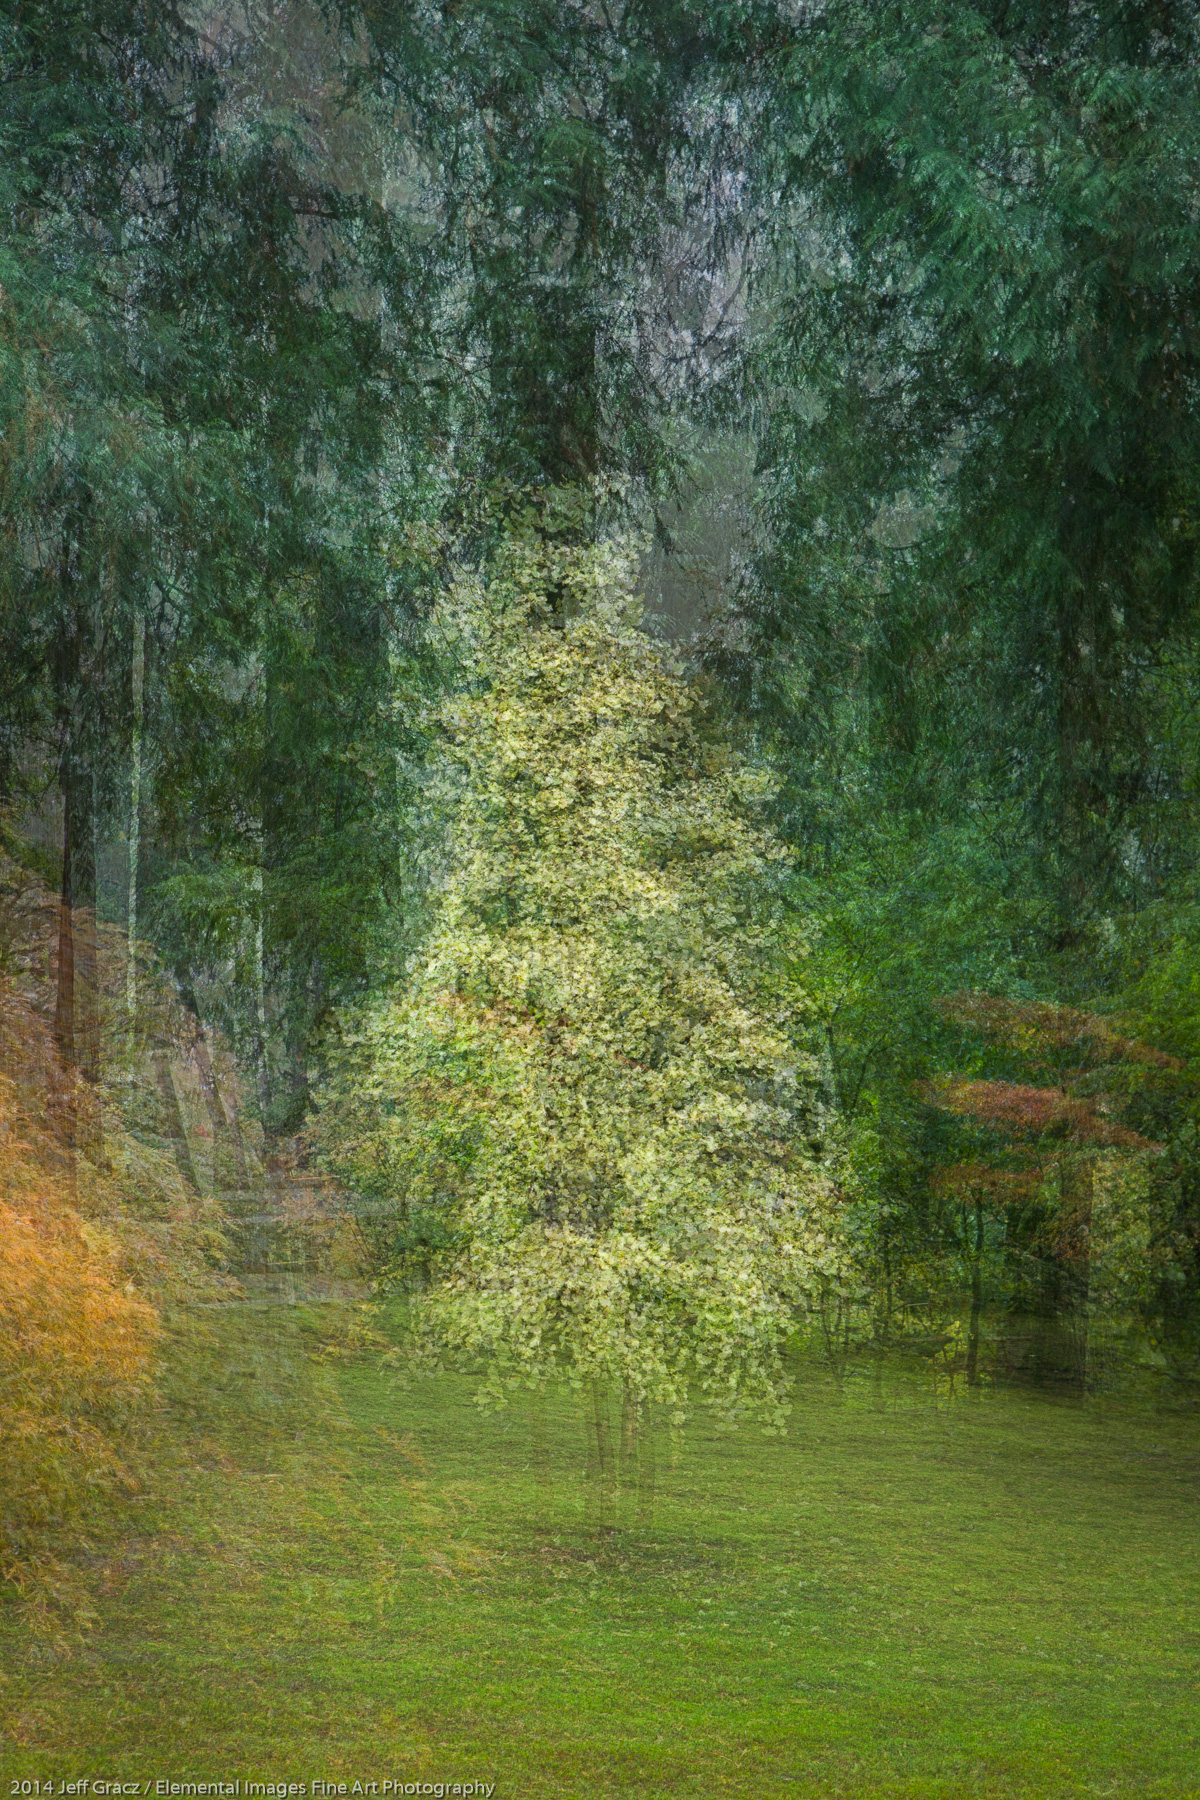 Arborhoods Series: Garden Gingko | Portland | OR | USA - © 2014 Jeff Gracz / Elemental Images Fine Art Photography - All Rights Reserved Worldwide